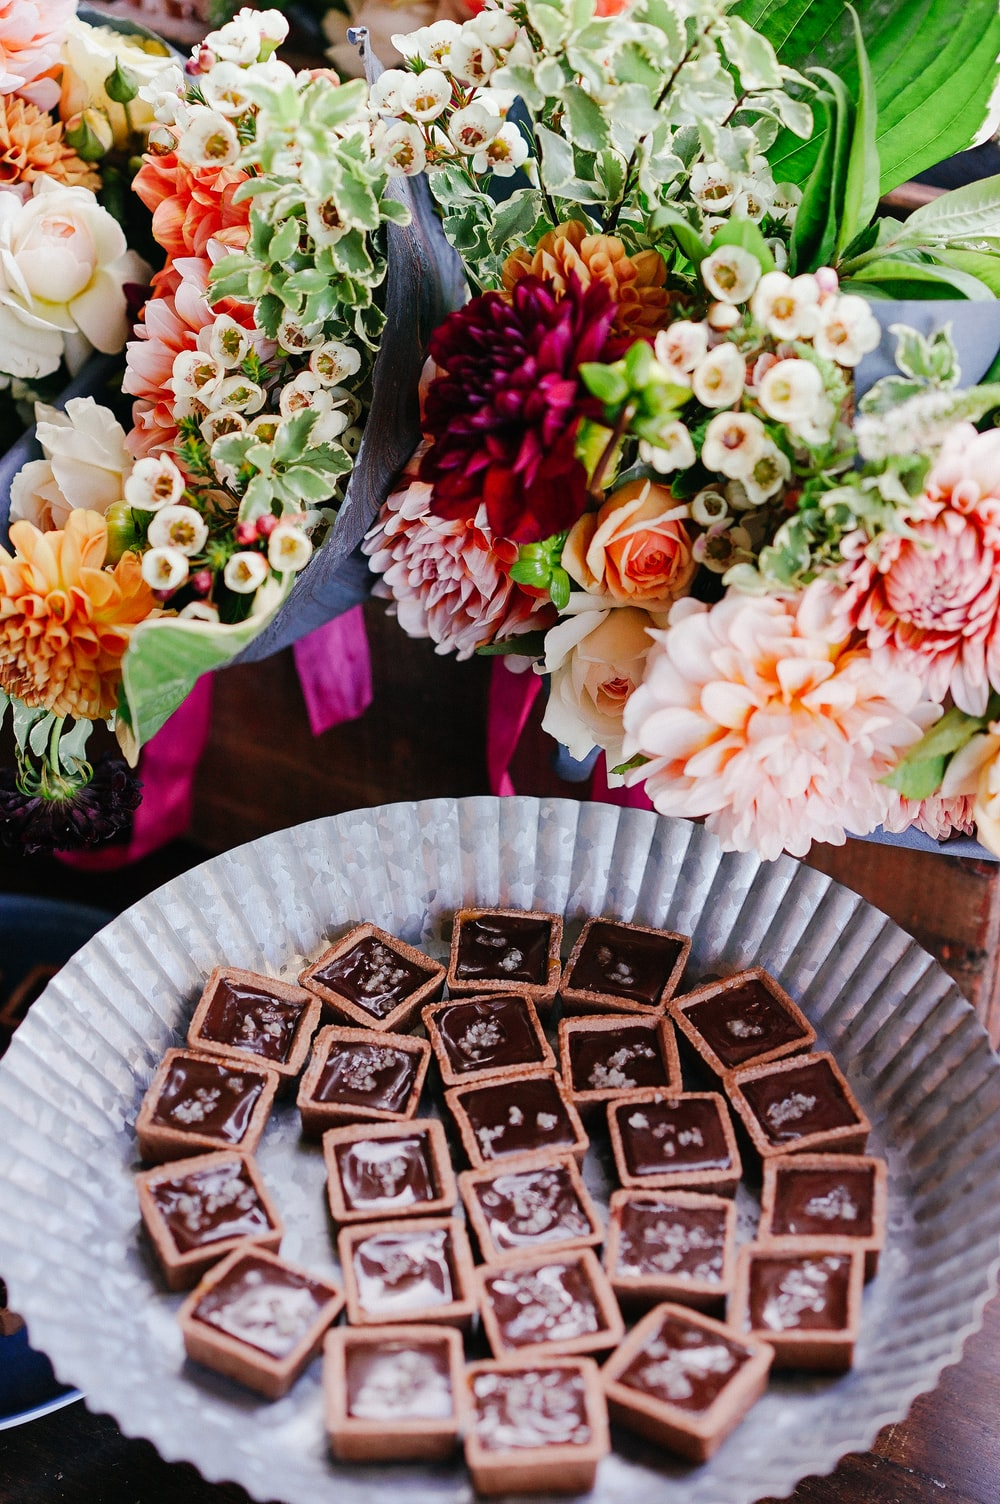 assorted flower bouquets and chocolates